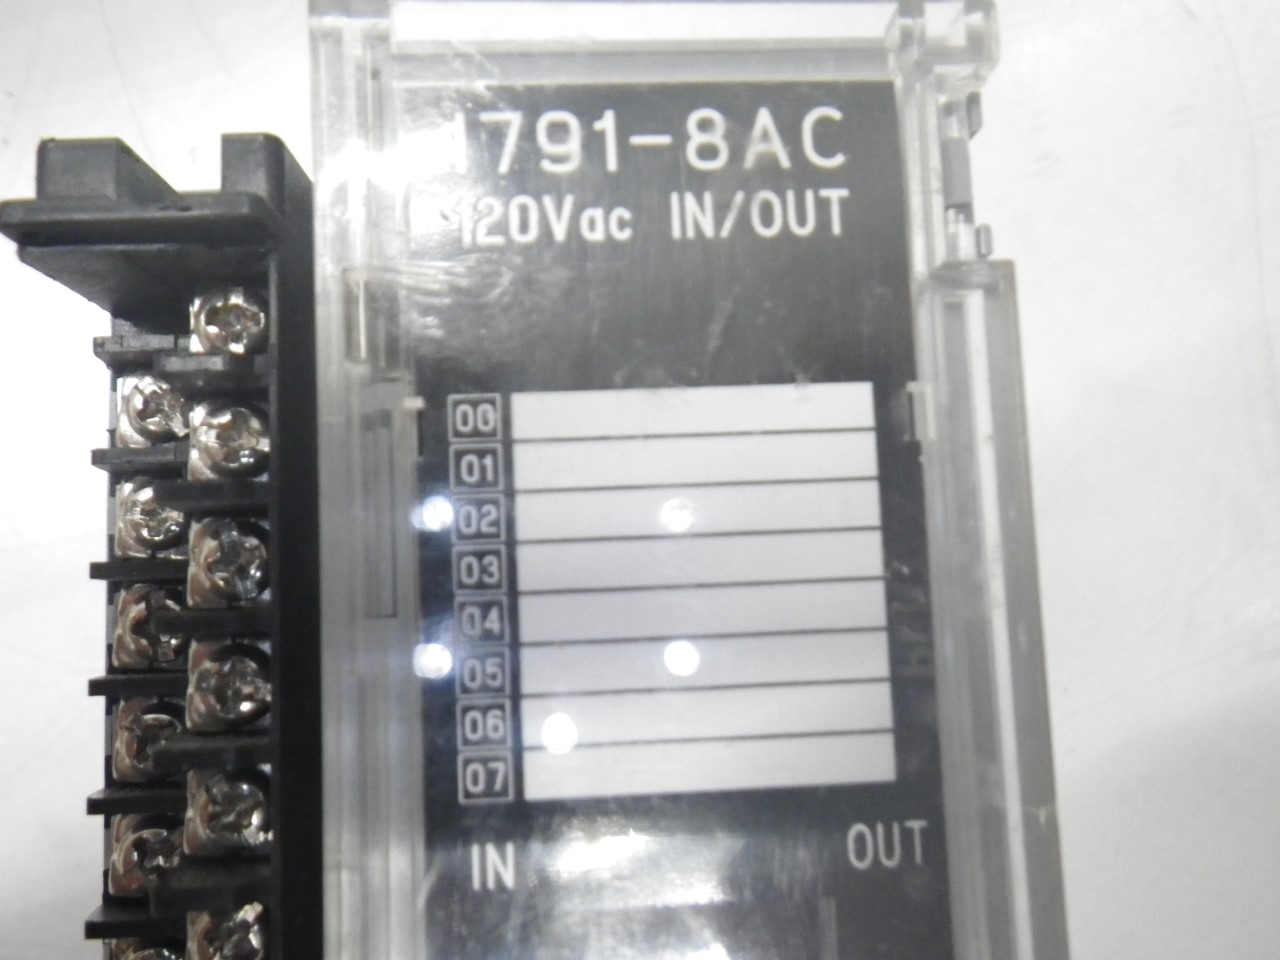 IMGP83251791-8AC Allen Bradley 1791-8ac Series b Block Io Module 120v (Used Tested) (5)